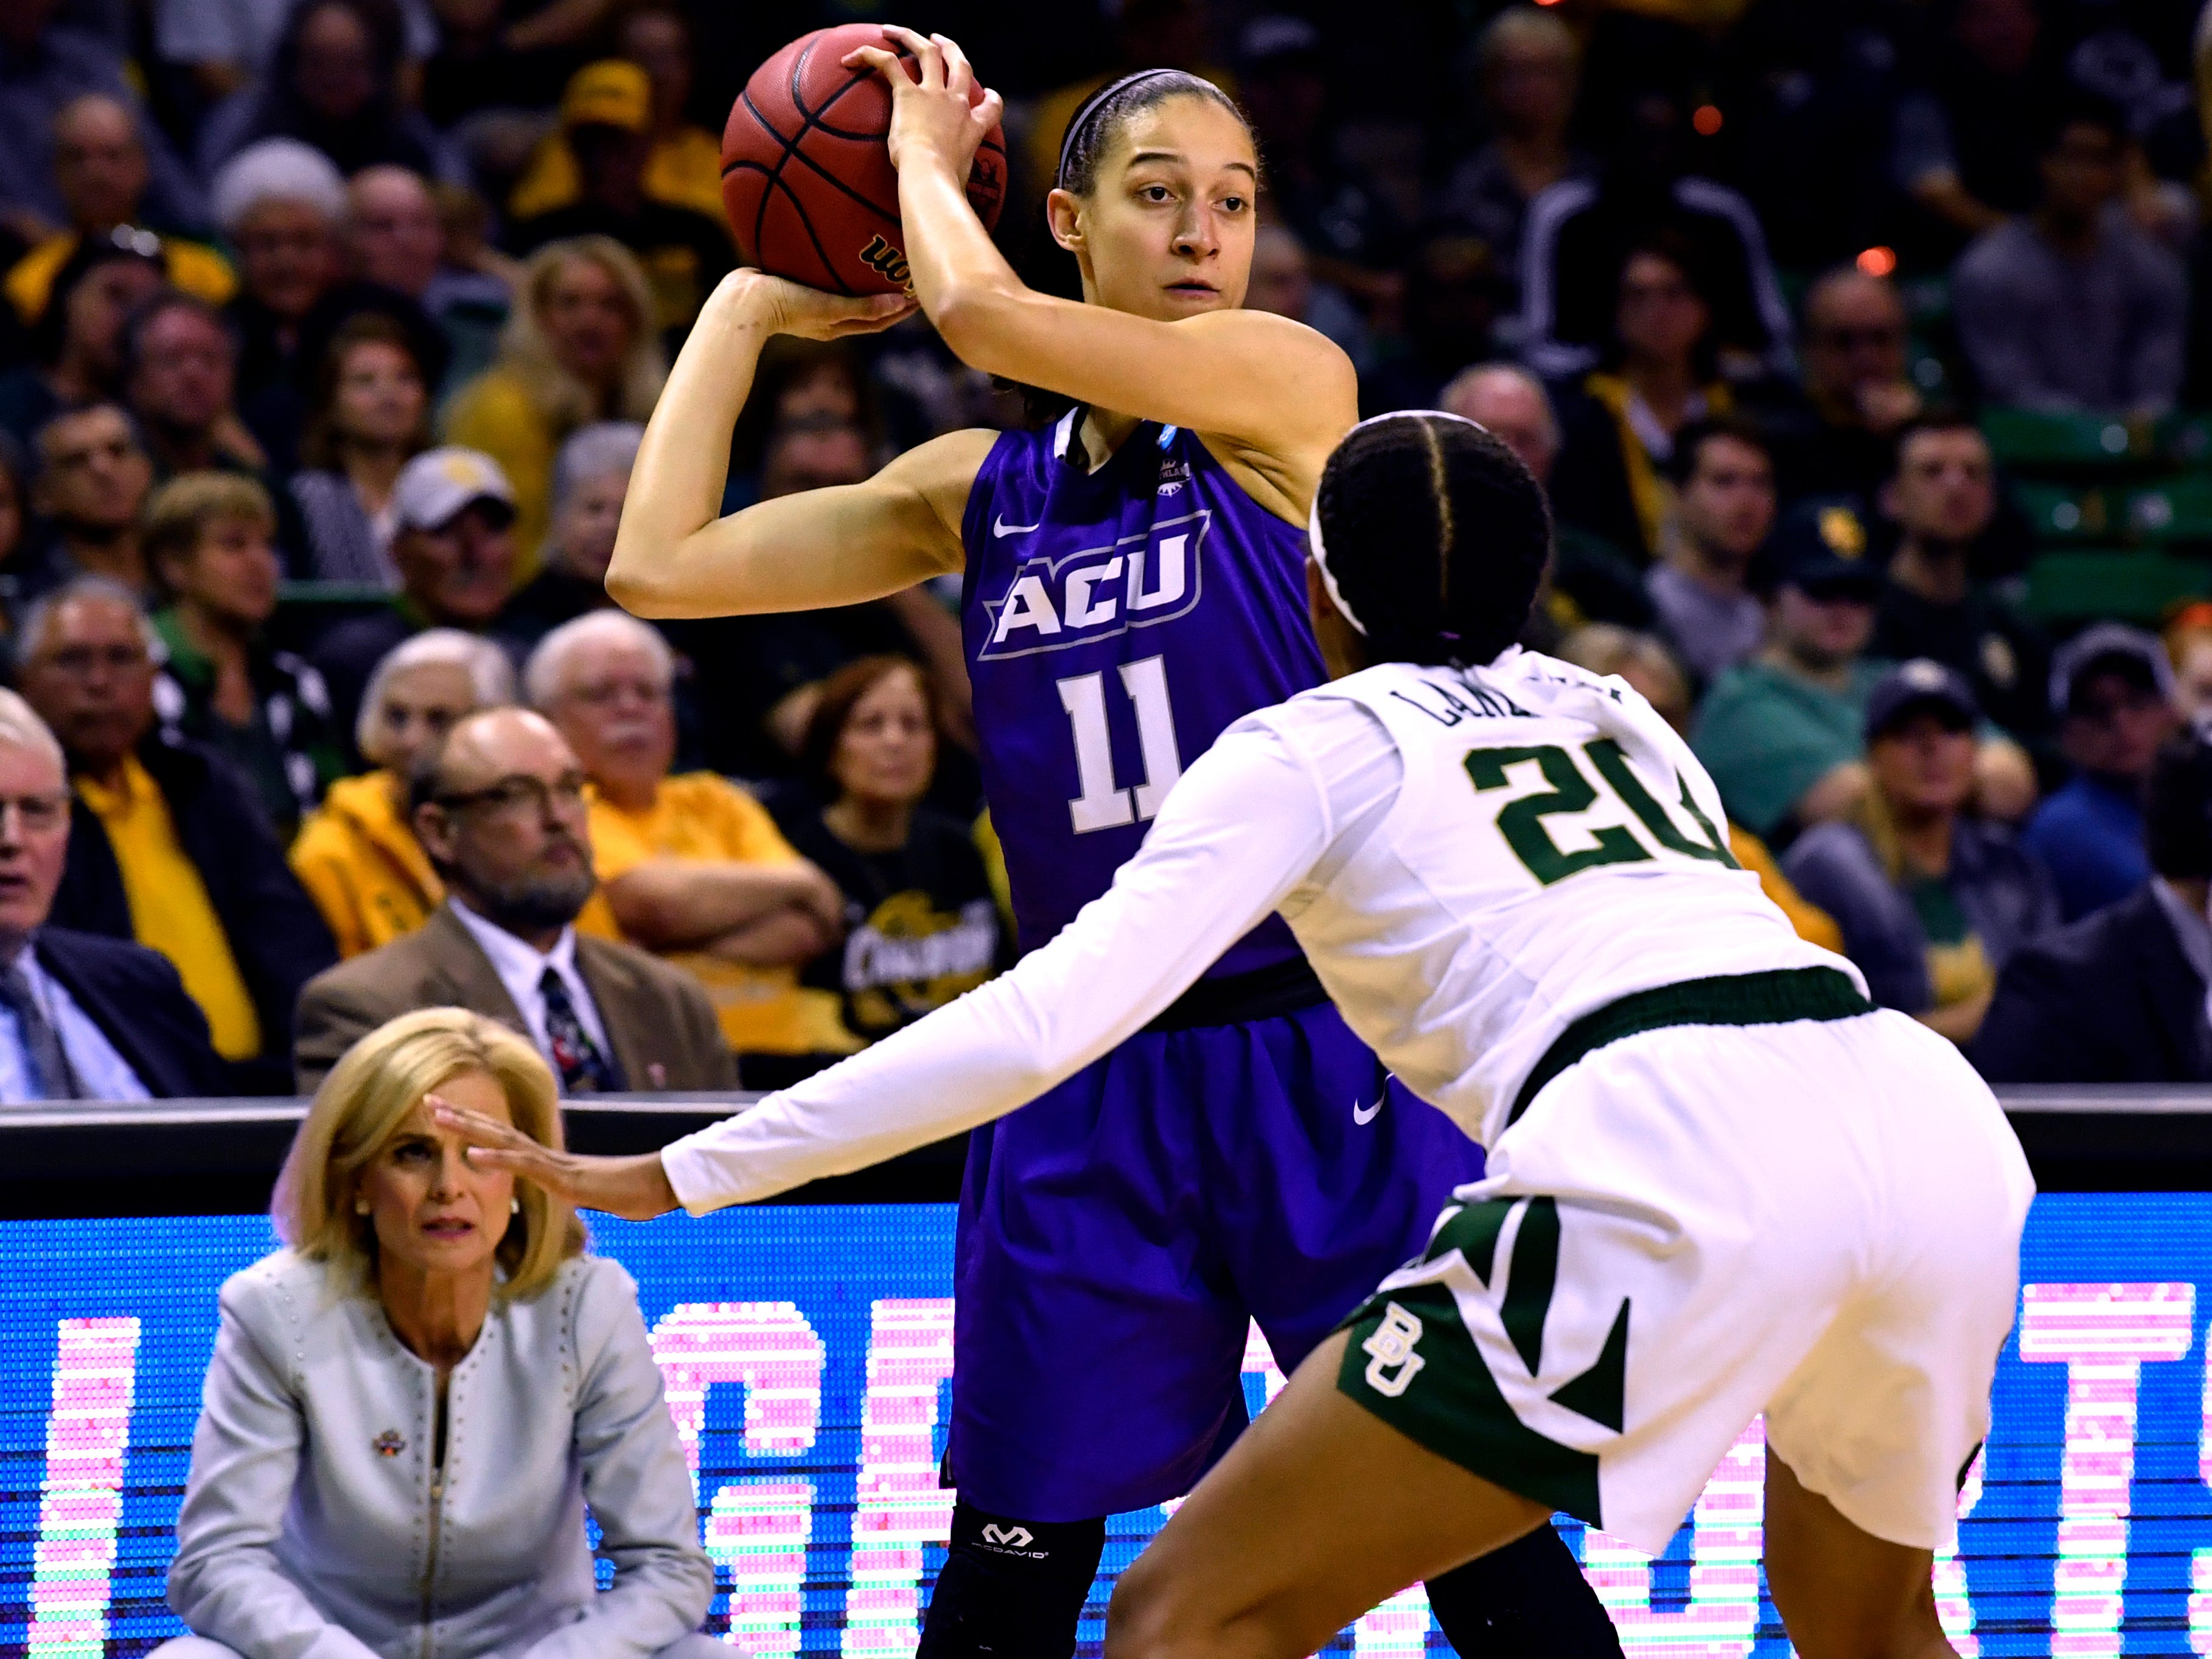 ACU's Sara Williamson looks for an opening past Baylor's Juicy Landrum during Saturday's NCAA Tournament women's round 1 basketball game March 23, 2019.